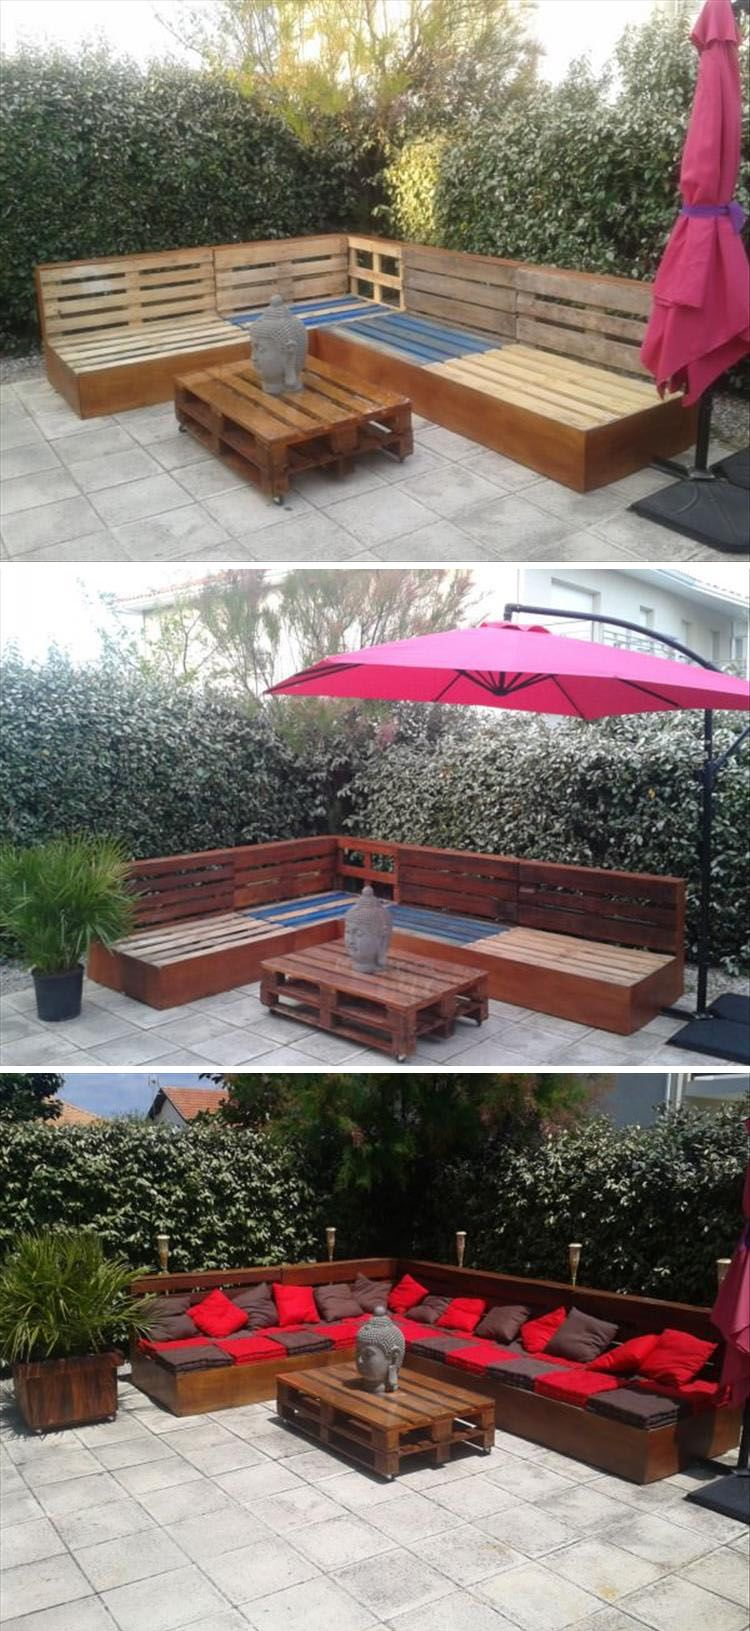 Sofas De Pallets Para Area Externa Amazing Uses For Old Pallets 13 Pics Projetos Para